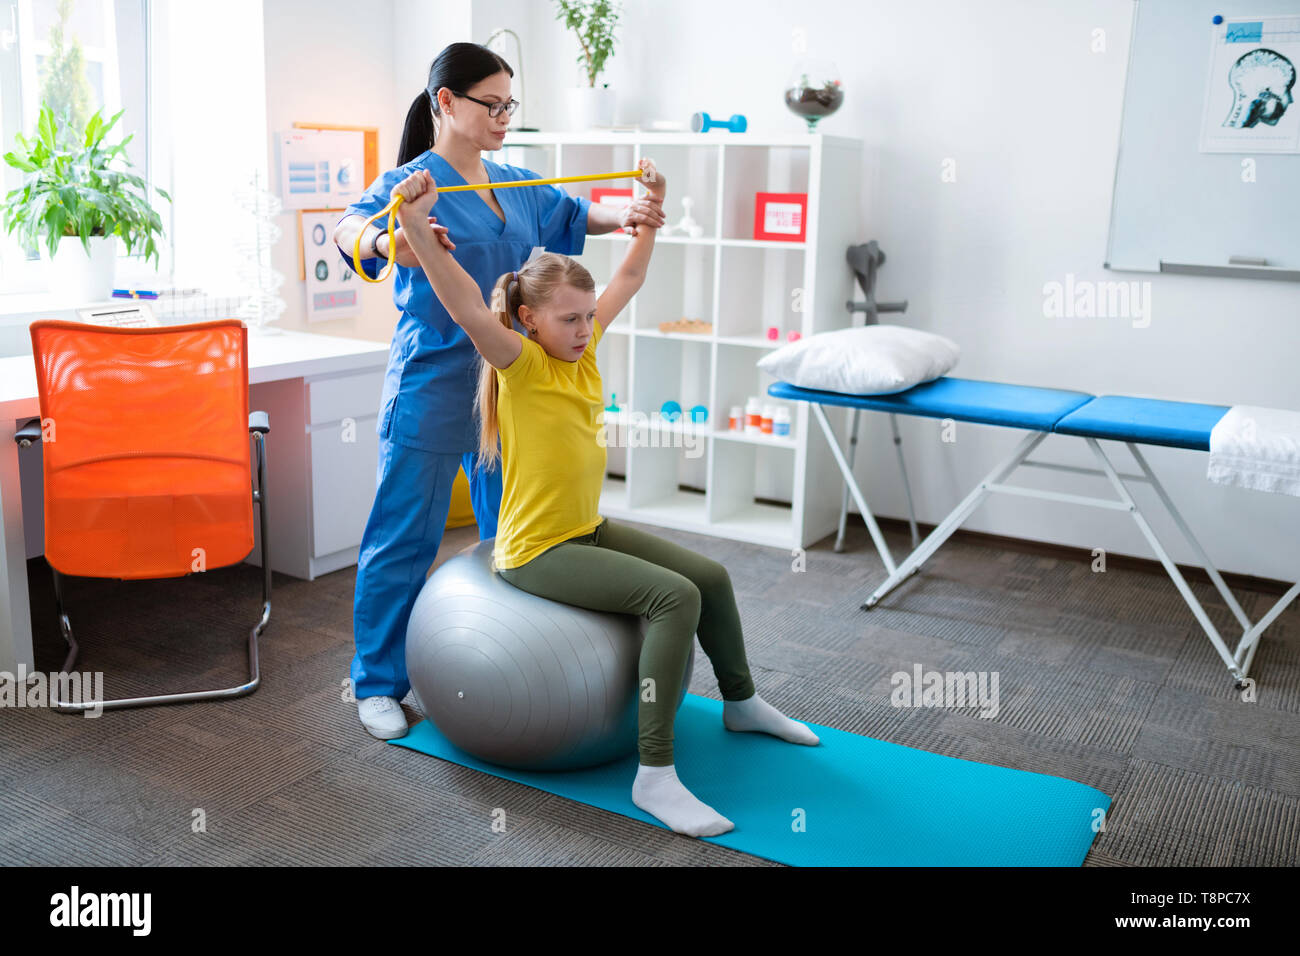 Attentive long-haired therapist improving exercise of blonde girl - Stock Image